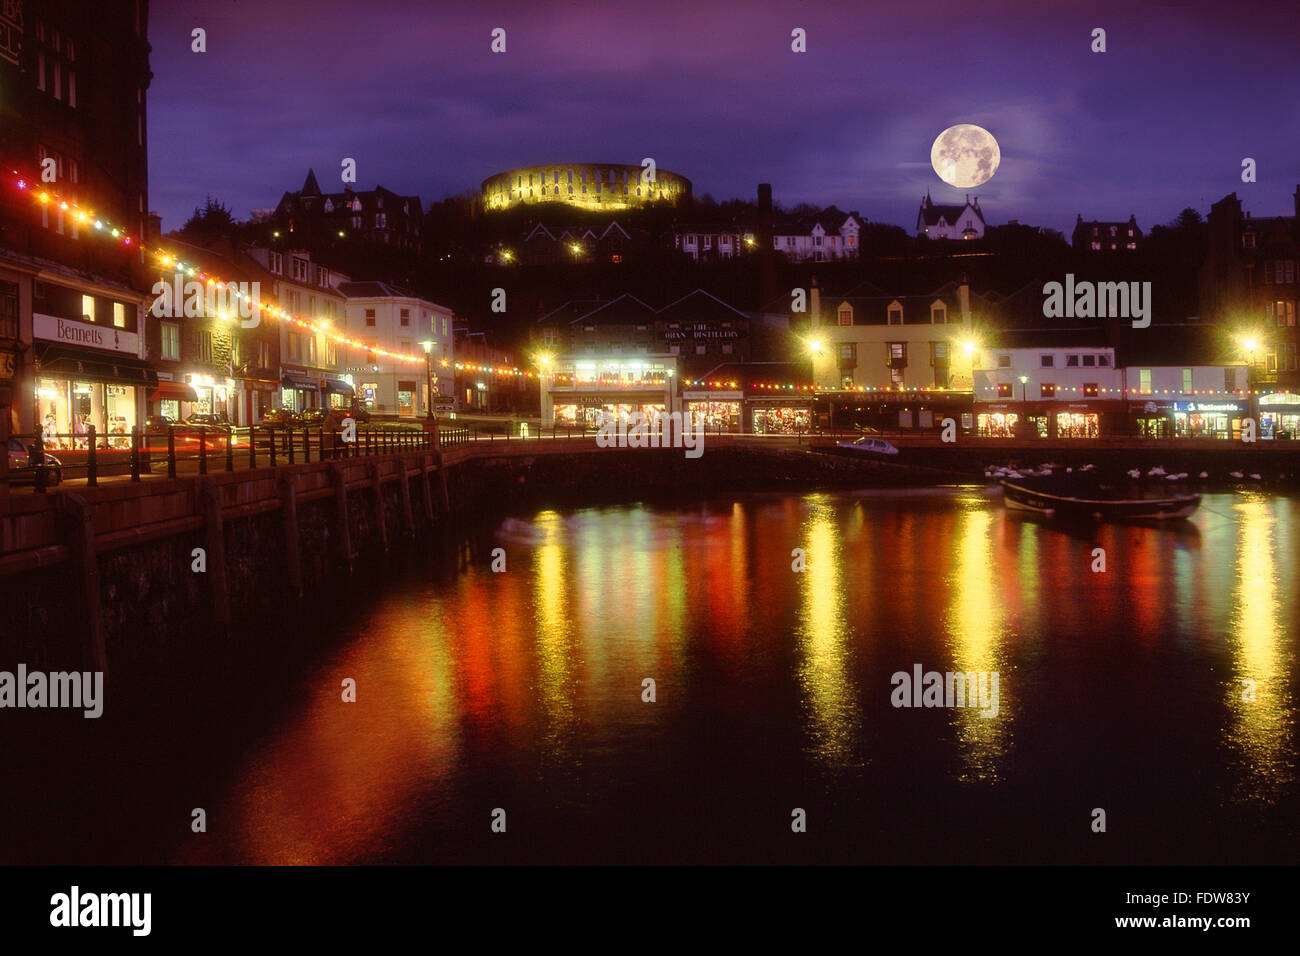 Christmas in Oban with McCaigs tower as seen from the north pier.Oban,Argyll,scotland.2008 Stock Photo